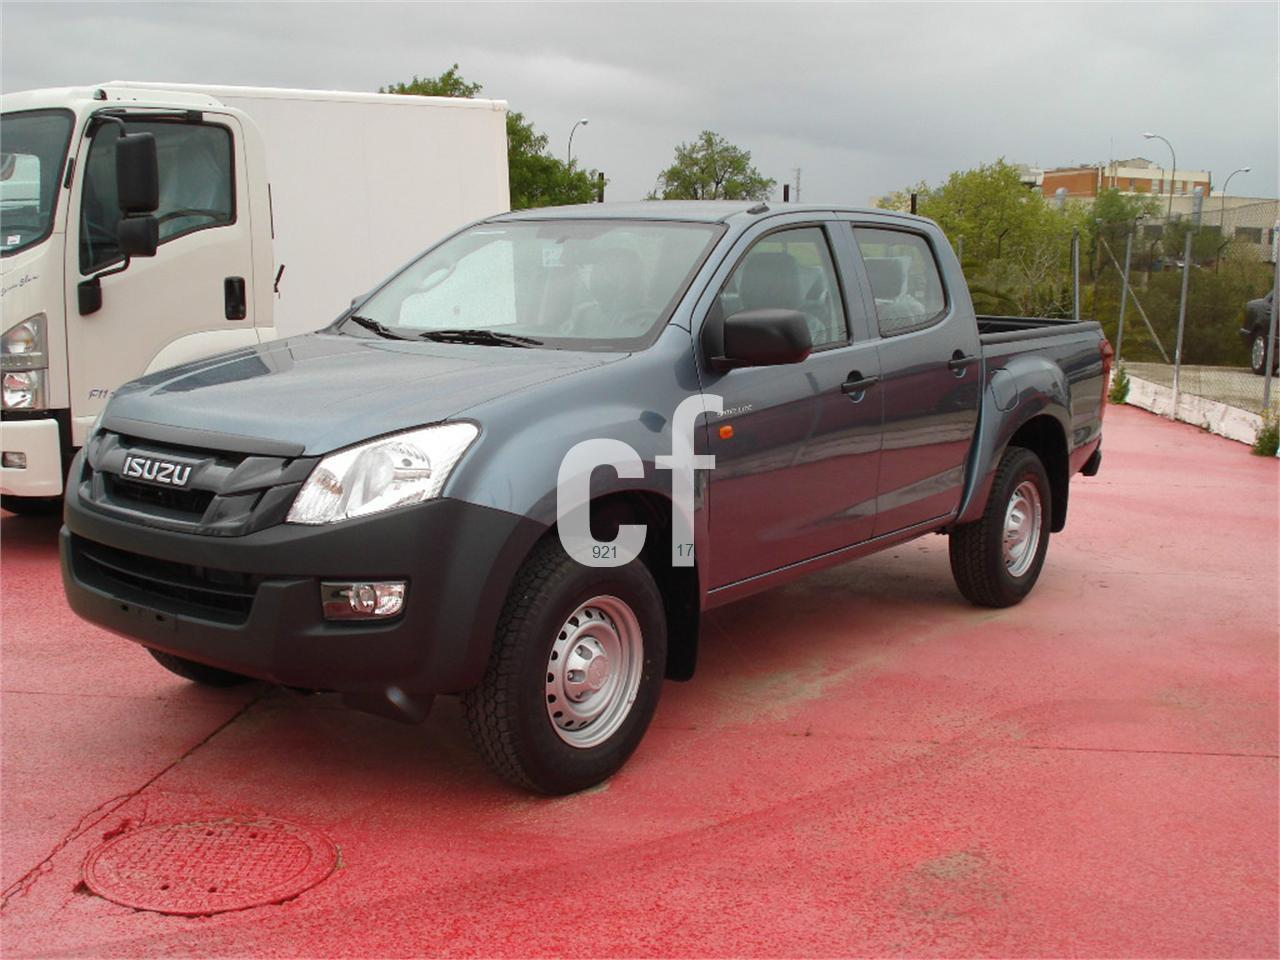 voiture occasion isuzu d max en espagne lindsay mccollum blog. Black Bedroom Furniture Sets. Home Design Ideas